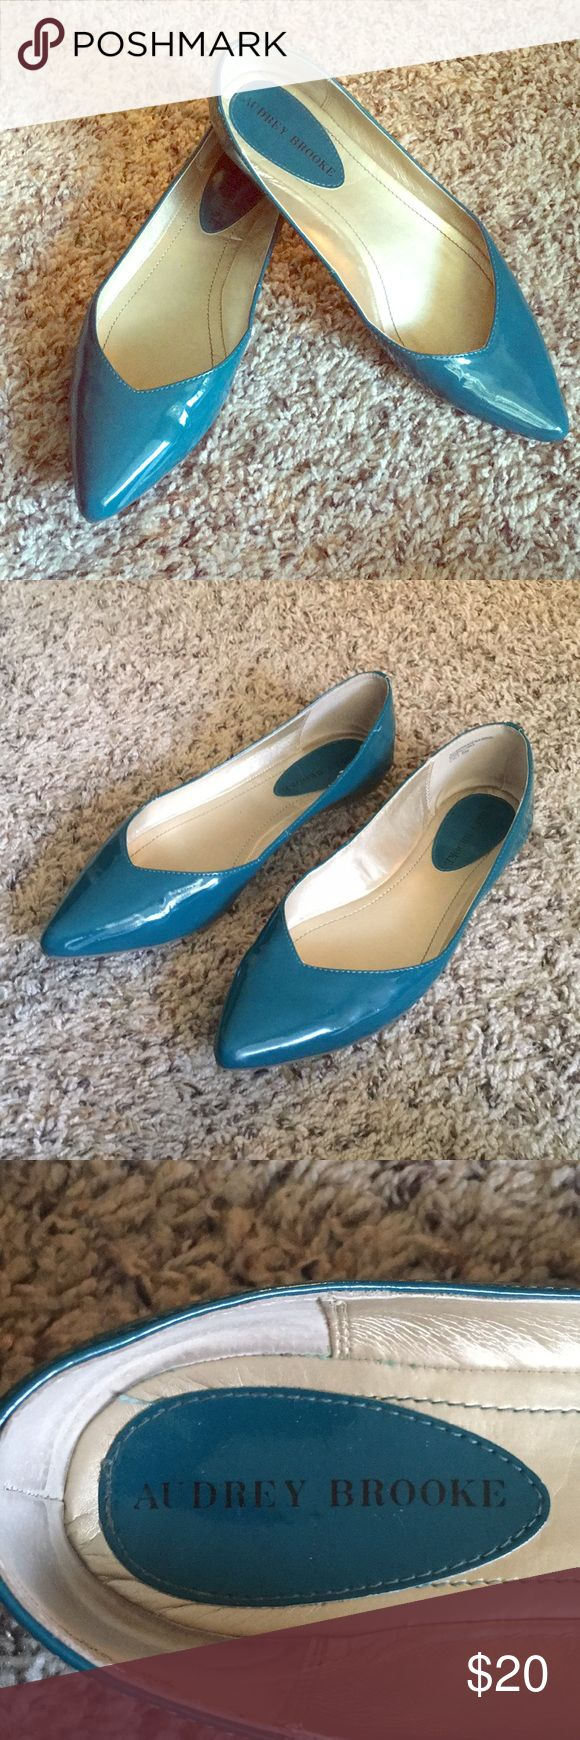 Audrey Brooke Patent Leather Flats Gently worn (only once or twice) Audrey Brooke Patent Leather Teal Flats. Pointed toe. Minor scuffs shown. Audrey Brooke Shoes Flats & Loafers